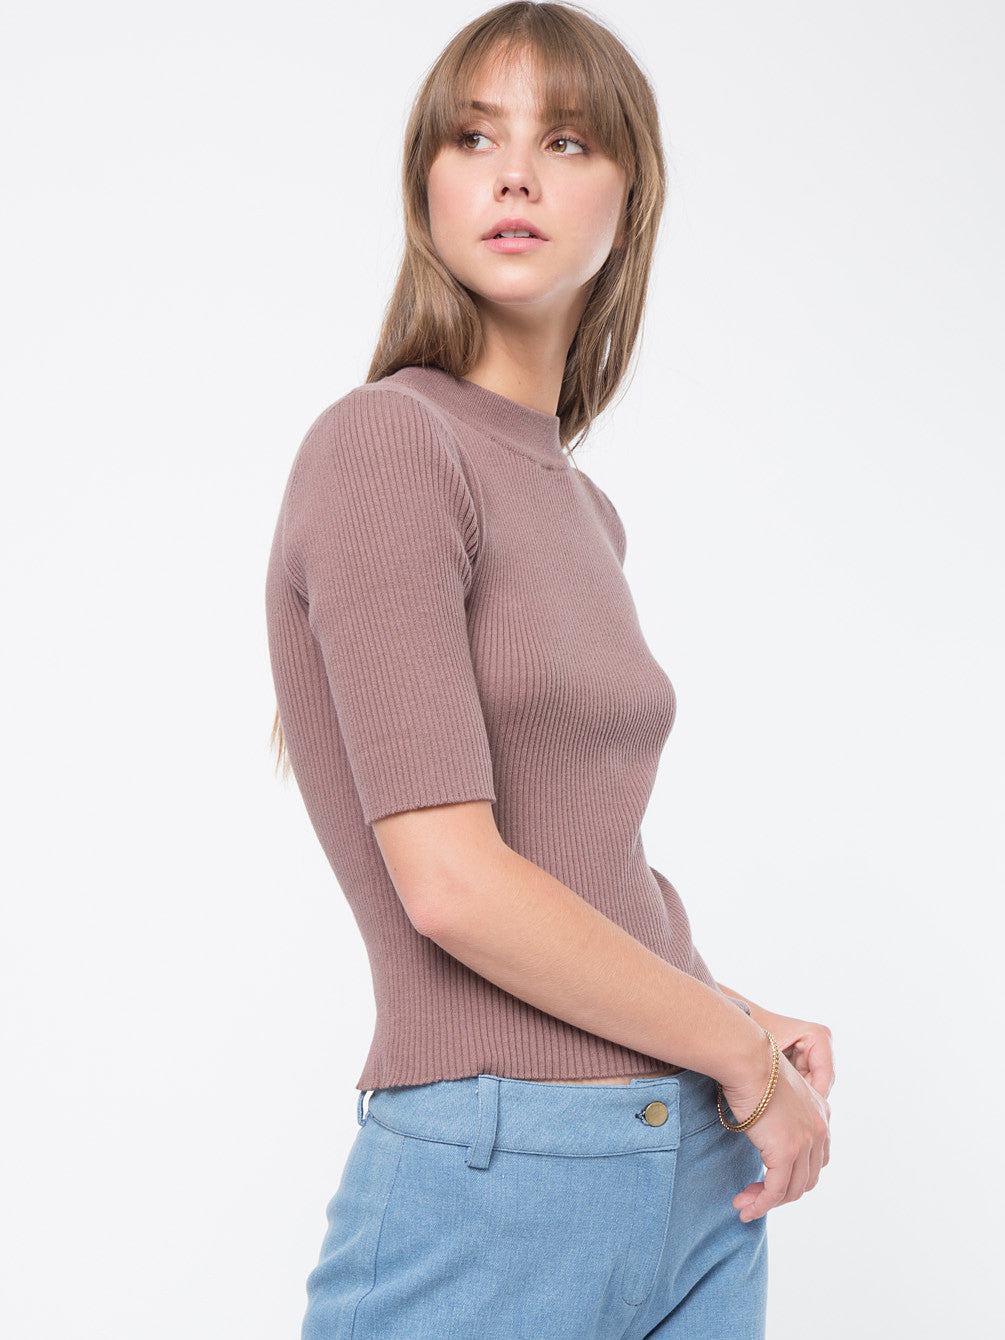 Ribbed Mock Neck Short Sleeve Sweater Top